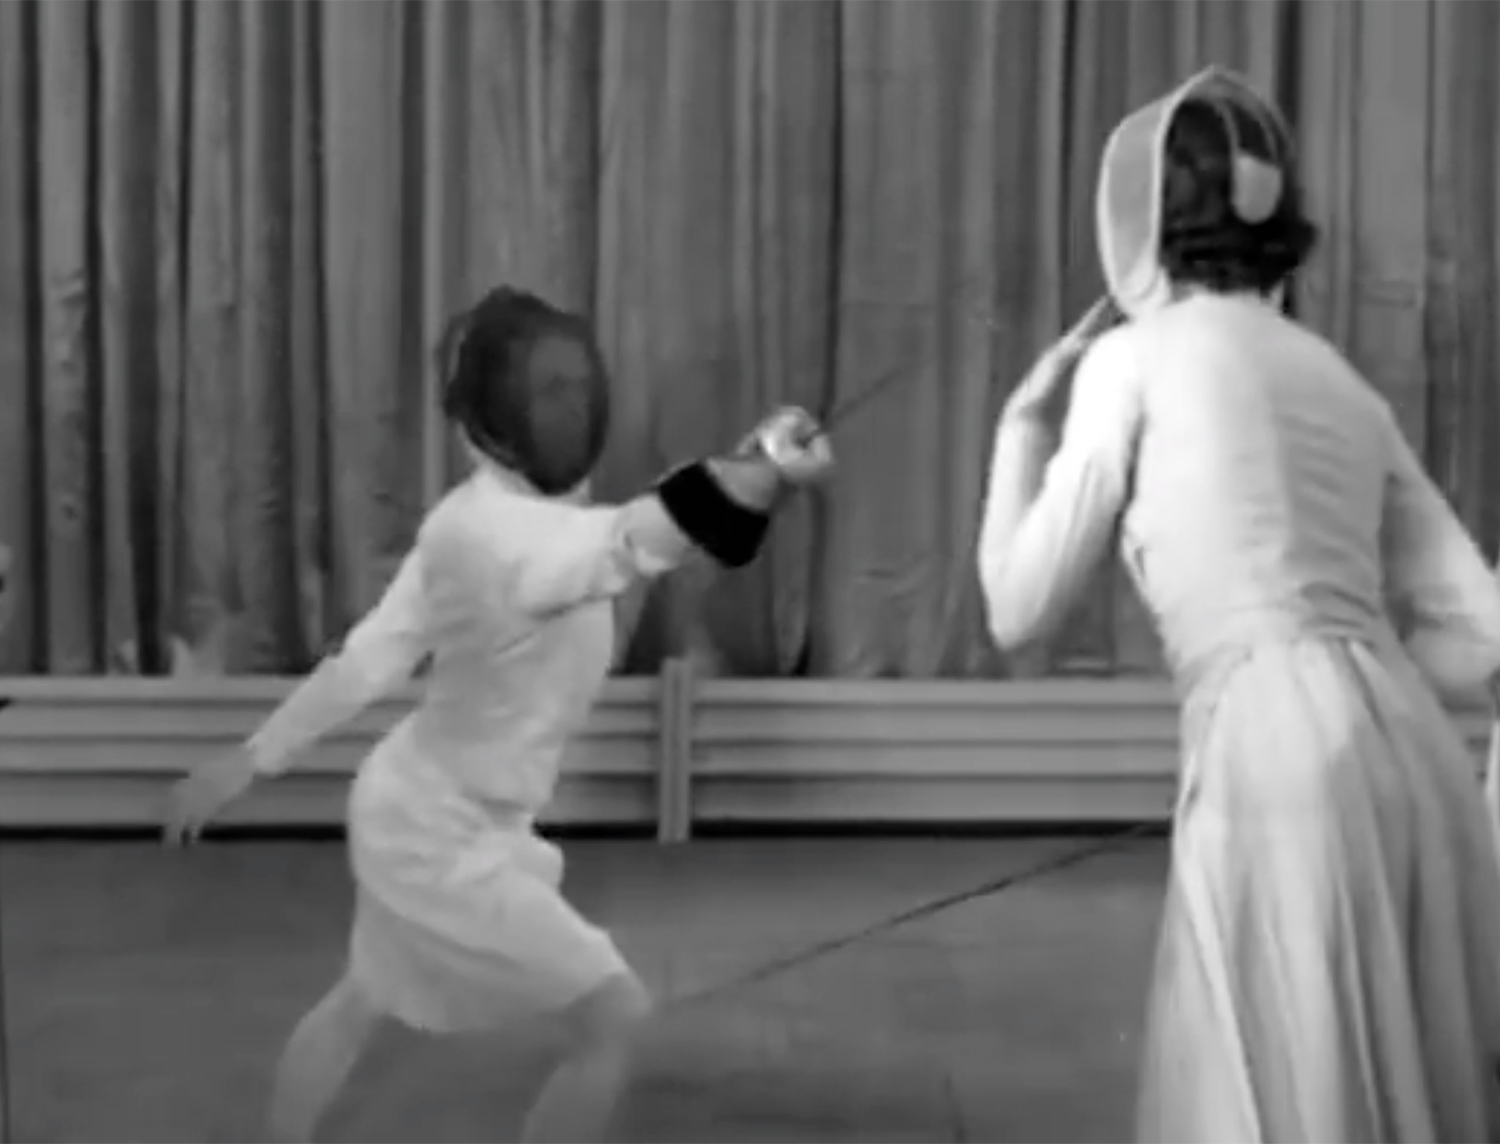 Women Fencing, 1937 (video)